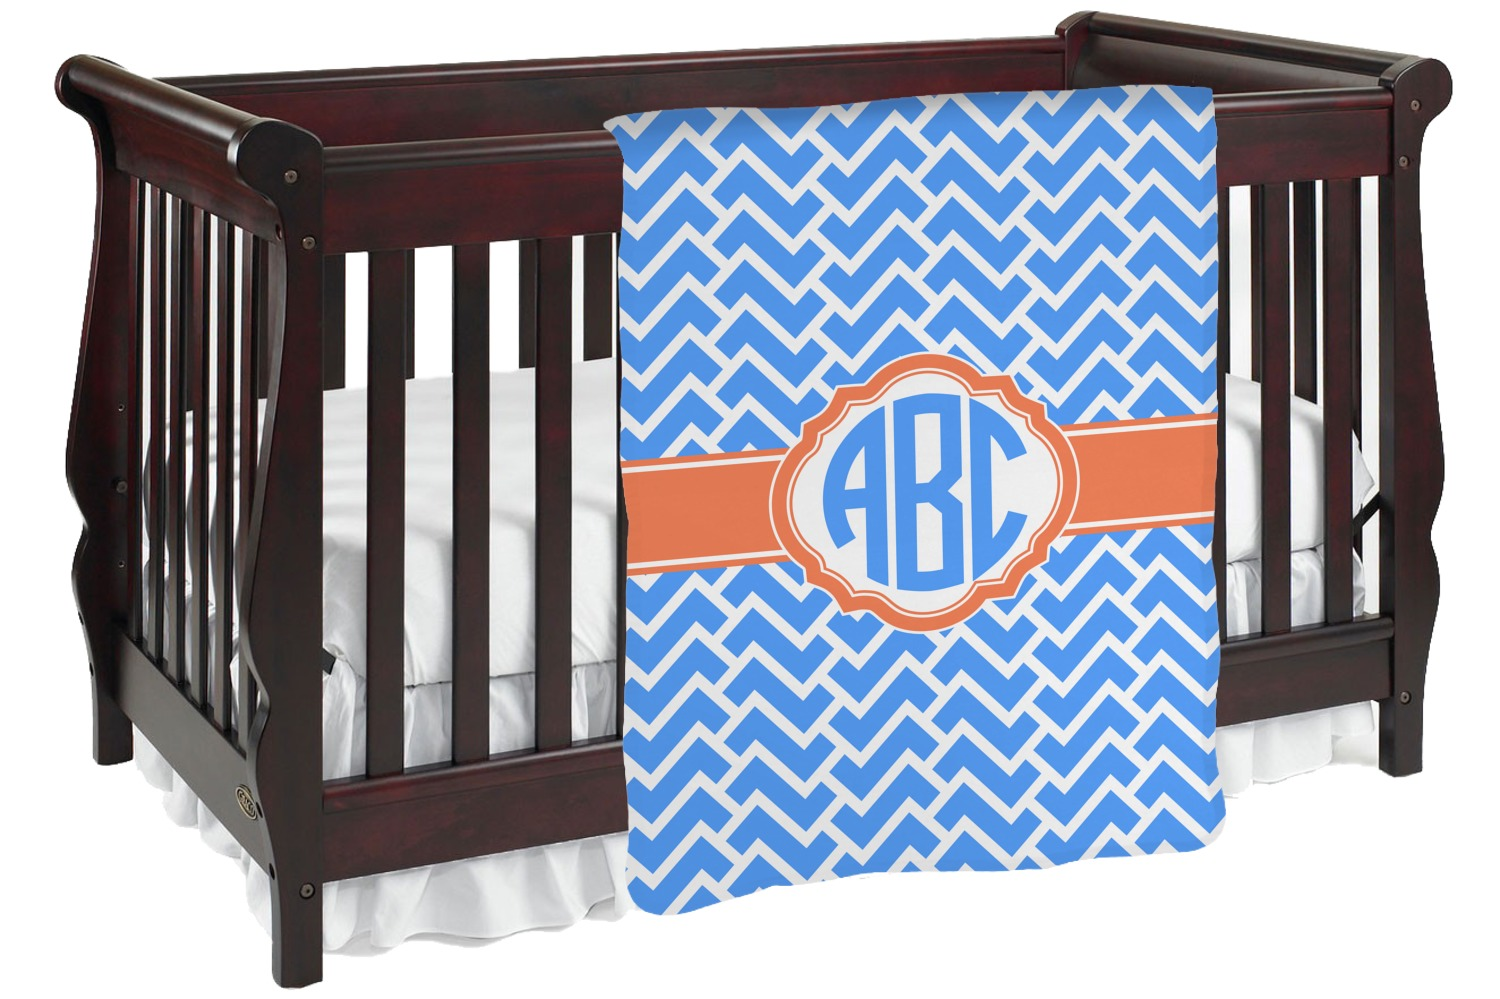 a88a4101e2b5 Zigzag Baby Blanket (Personalized) - YouCustomizeIt